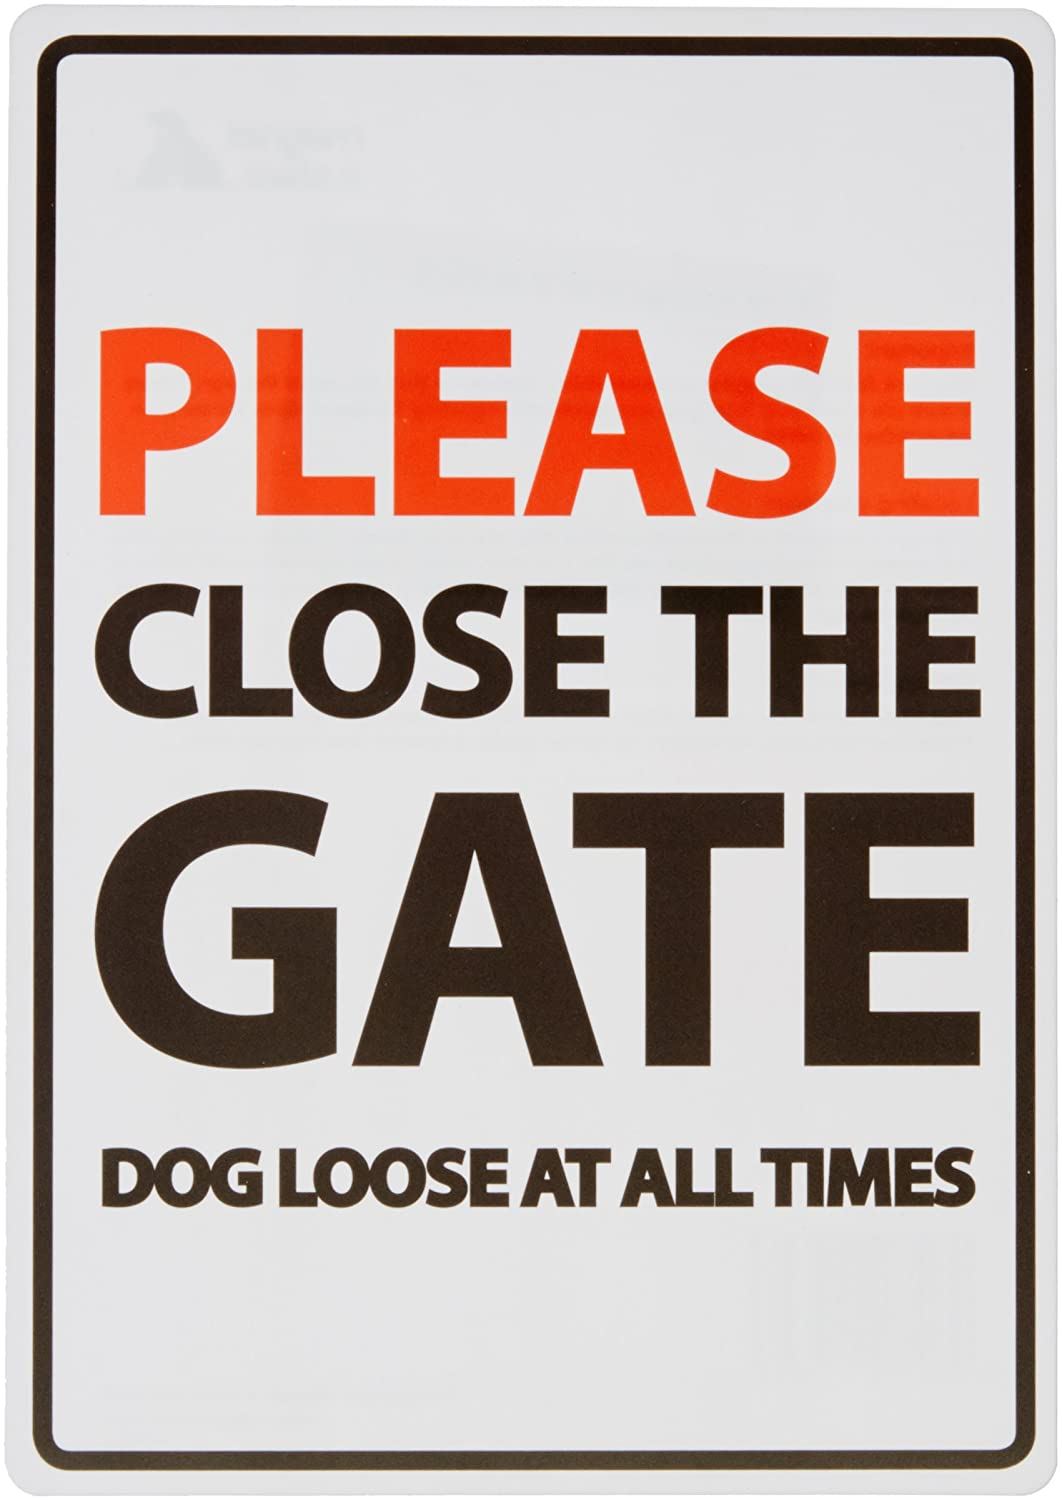 Please Close The Gate Dog Loose At All Times A5 Sign Magnet & Steel Ltd 5029